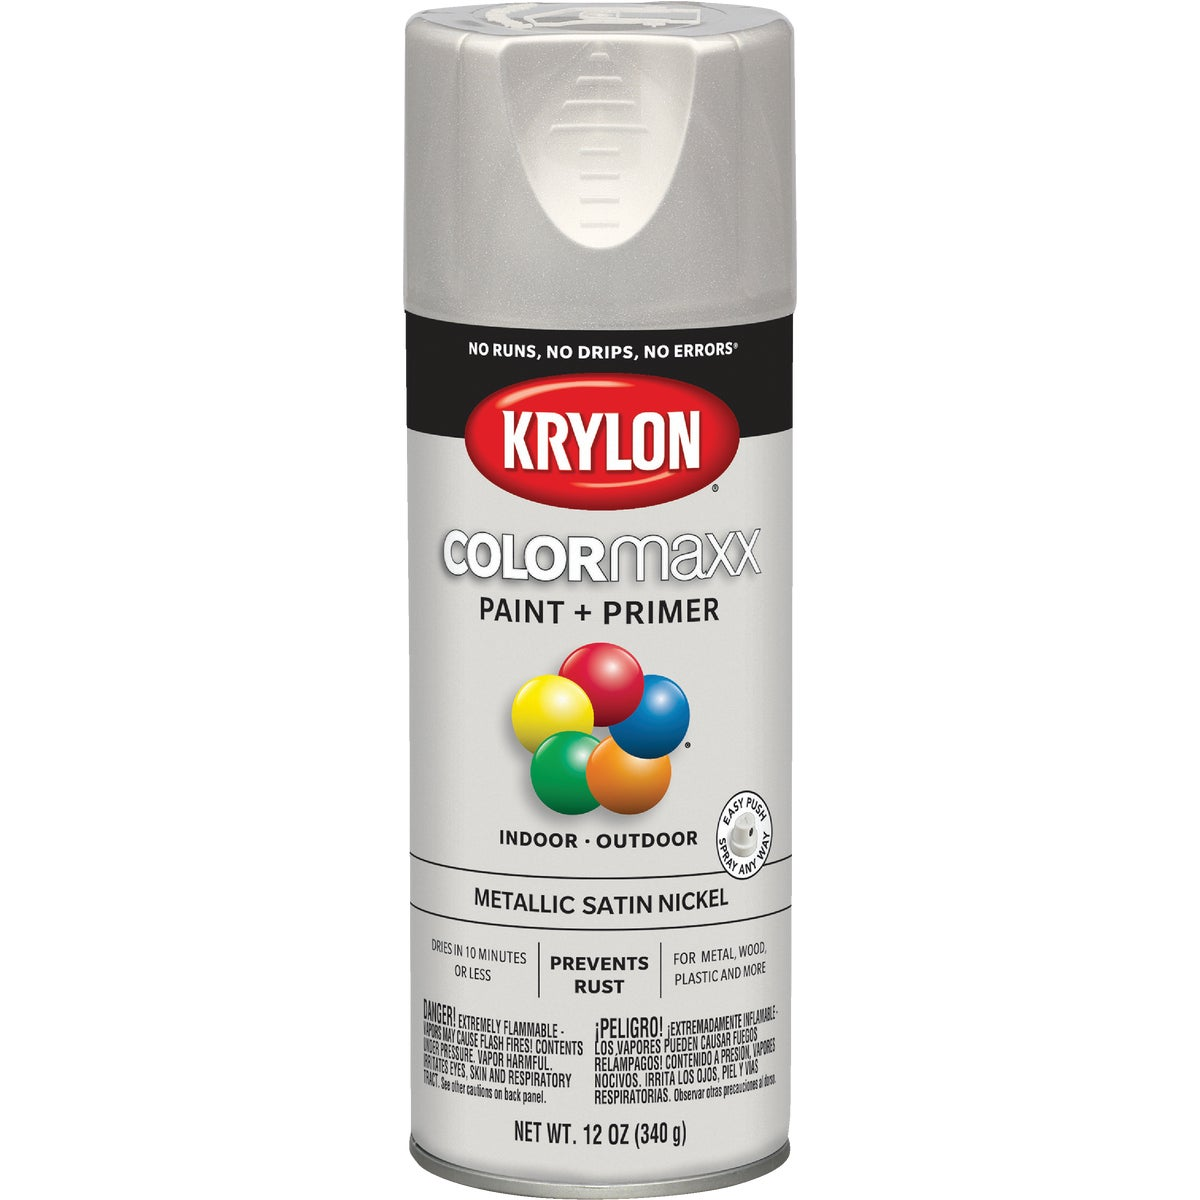 BRUSH NICKEL SPRAY PAINT - 51255 by Krylon/consumer Div